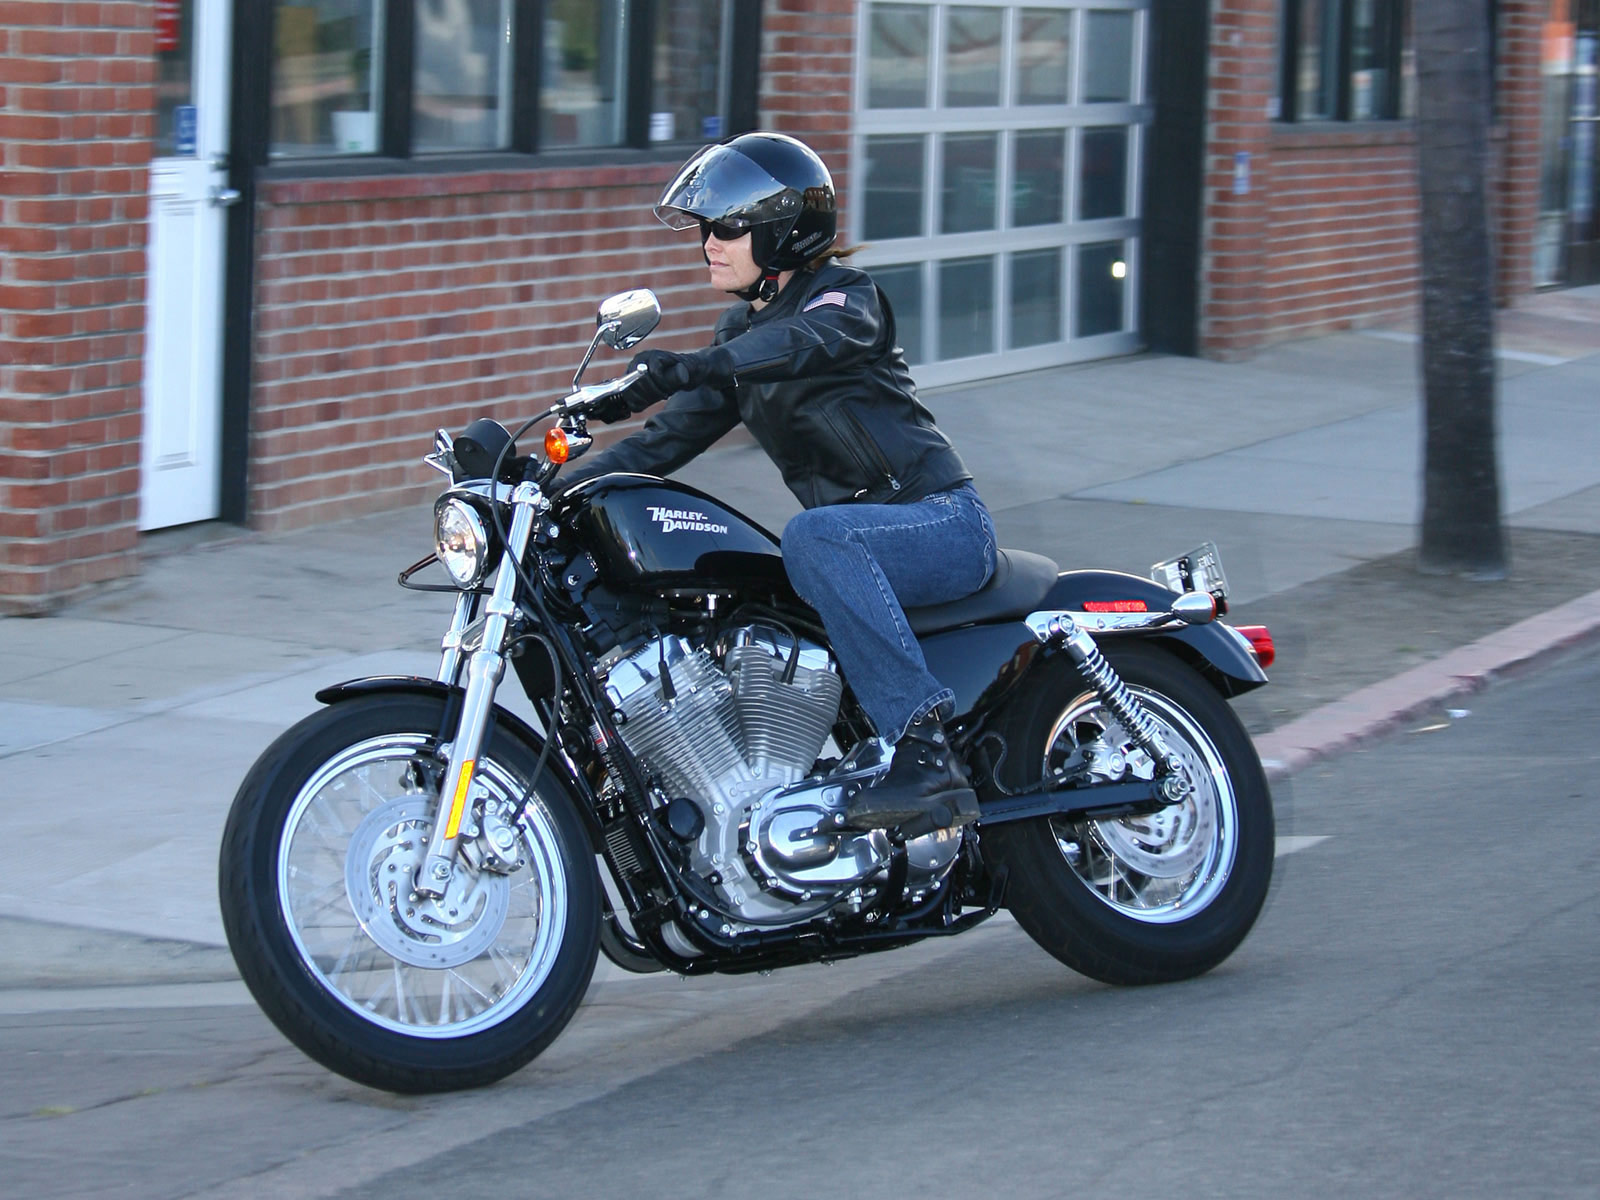 2008 Harley Davidson Xl883 Sportster 883 Accident Lawyers Info